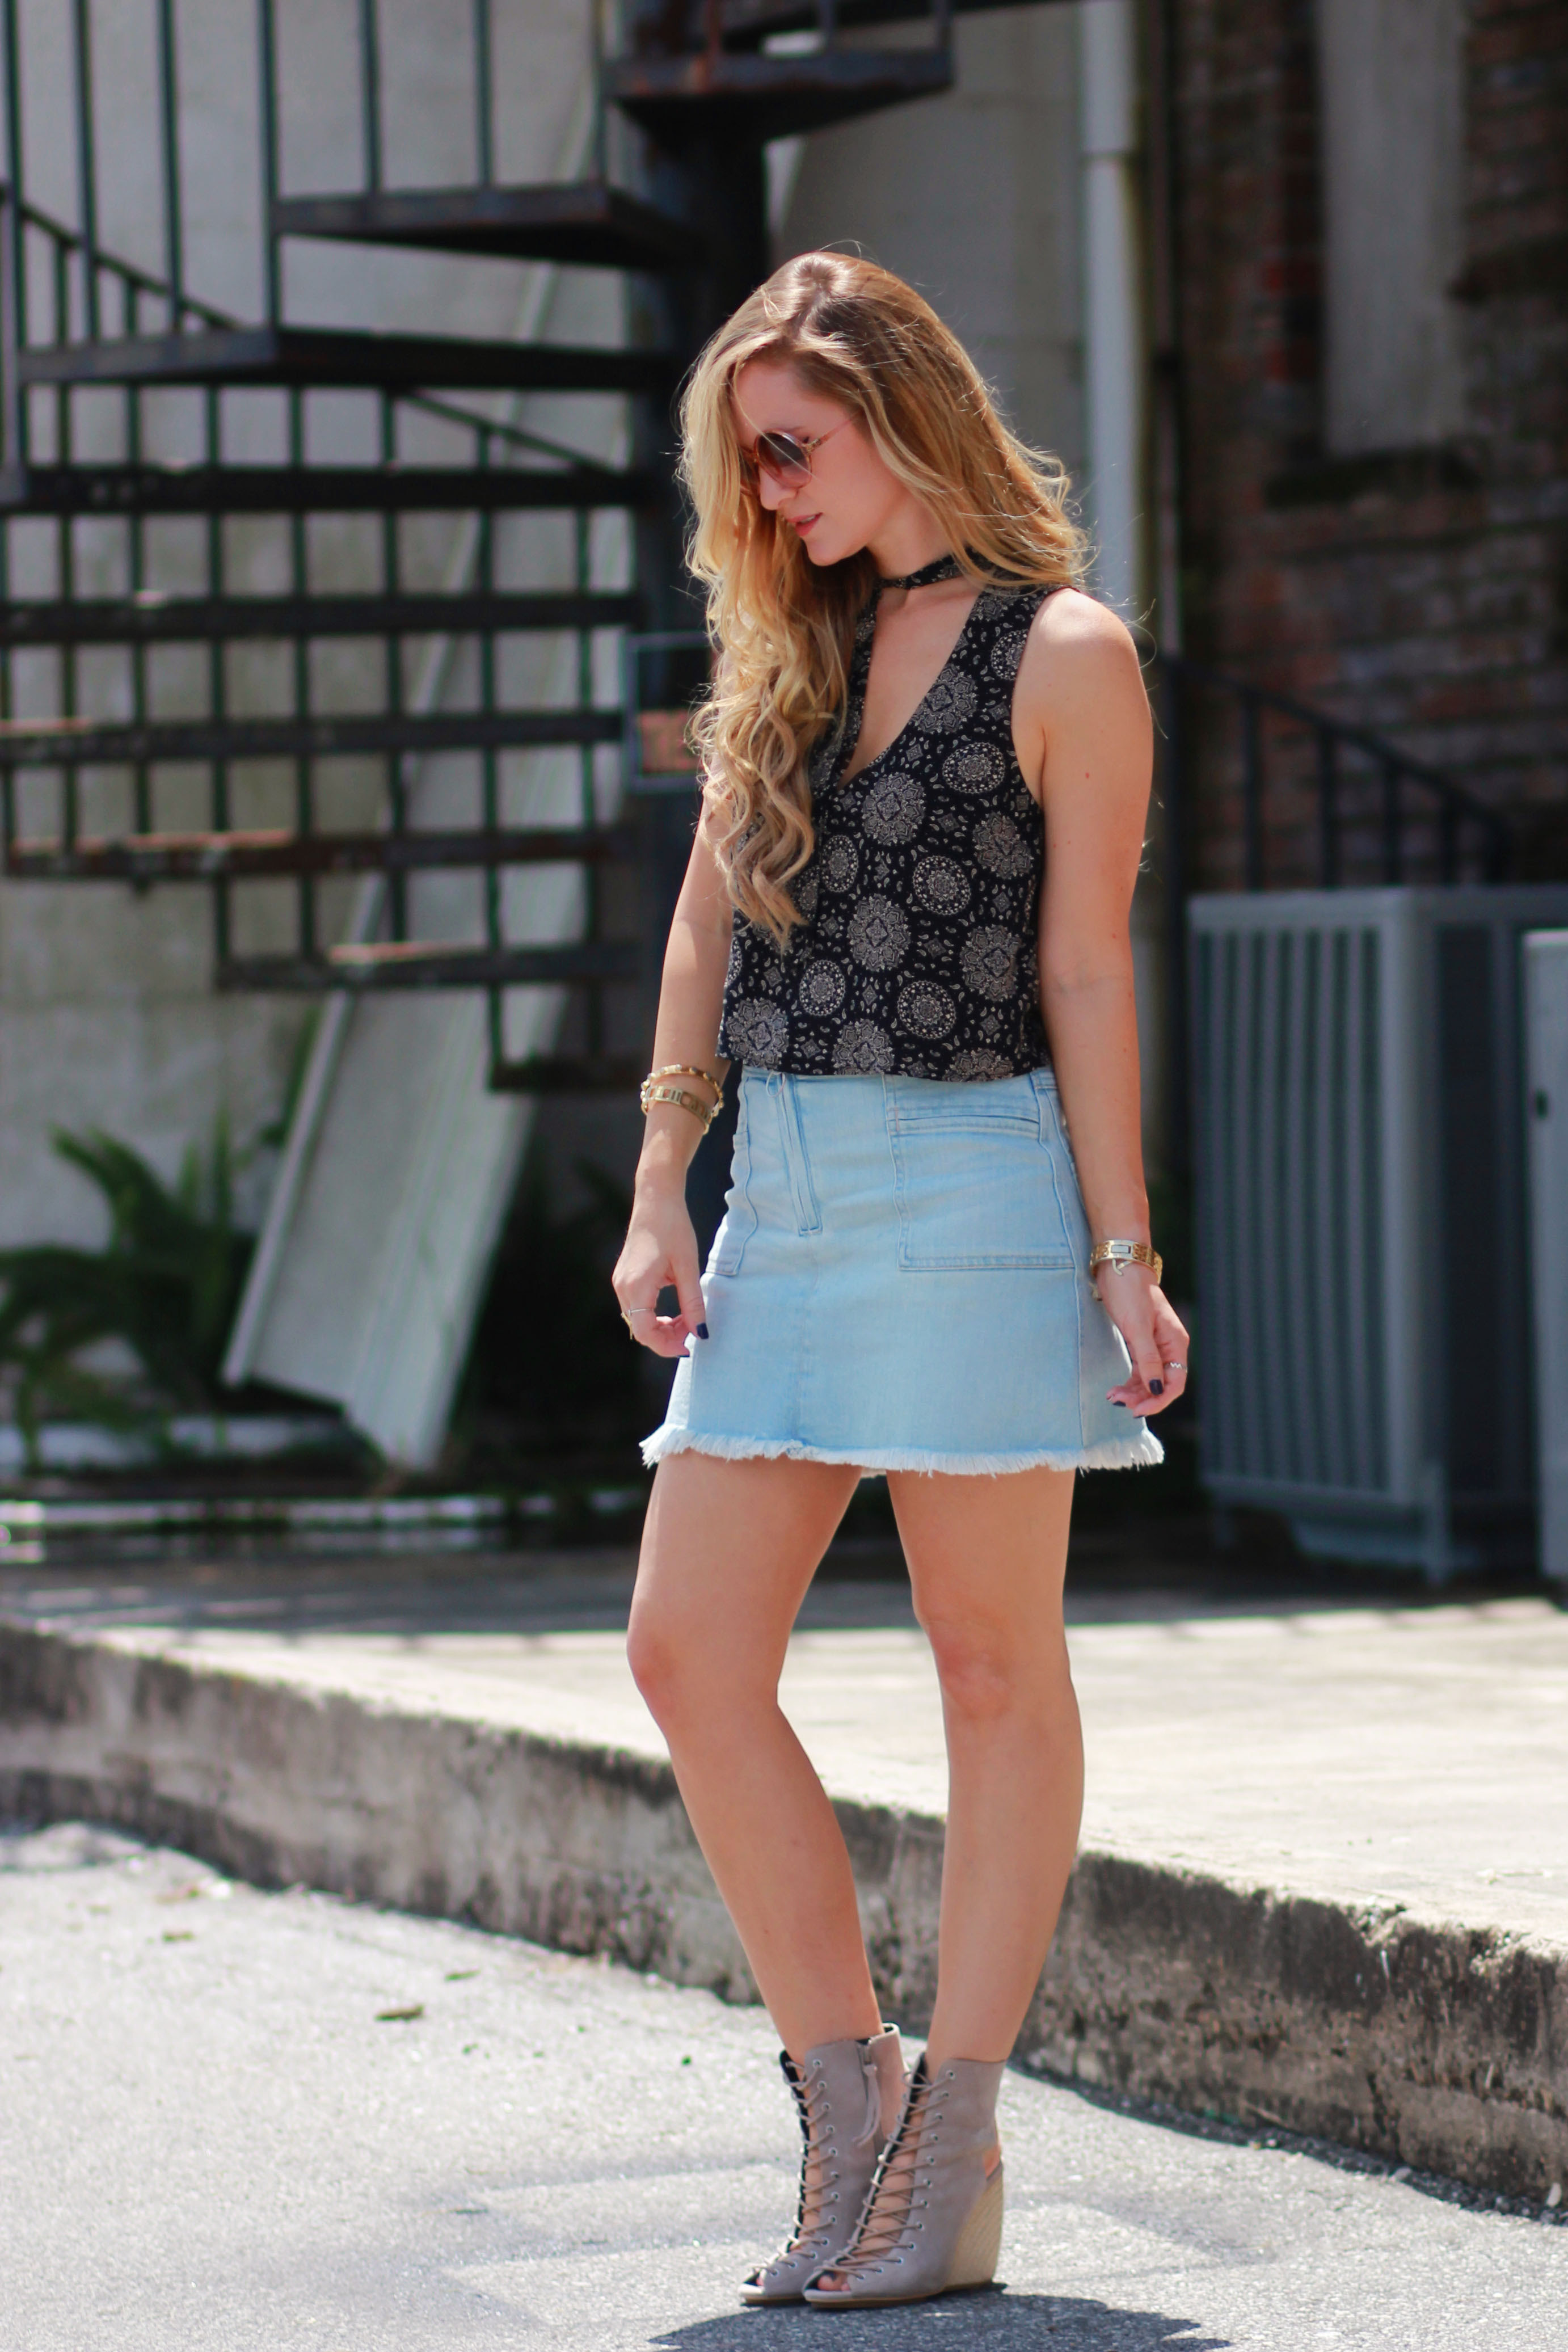 denim skirt outfit  upbeat soles  orlando florida